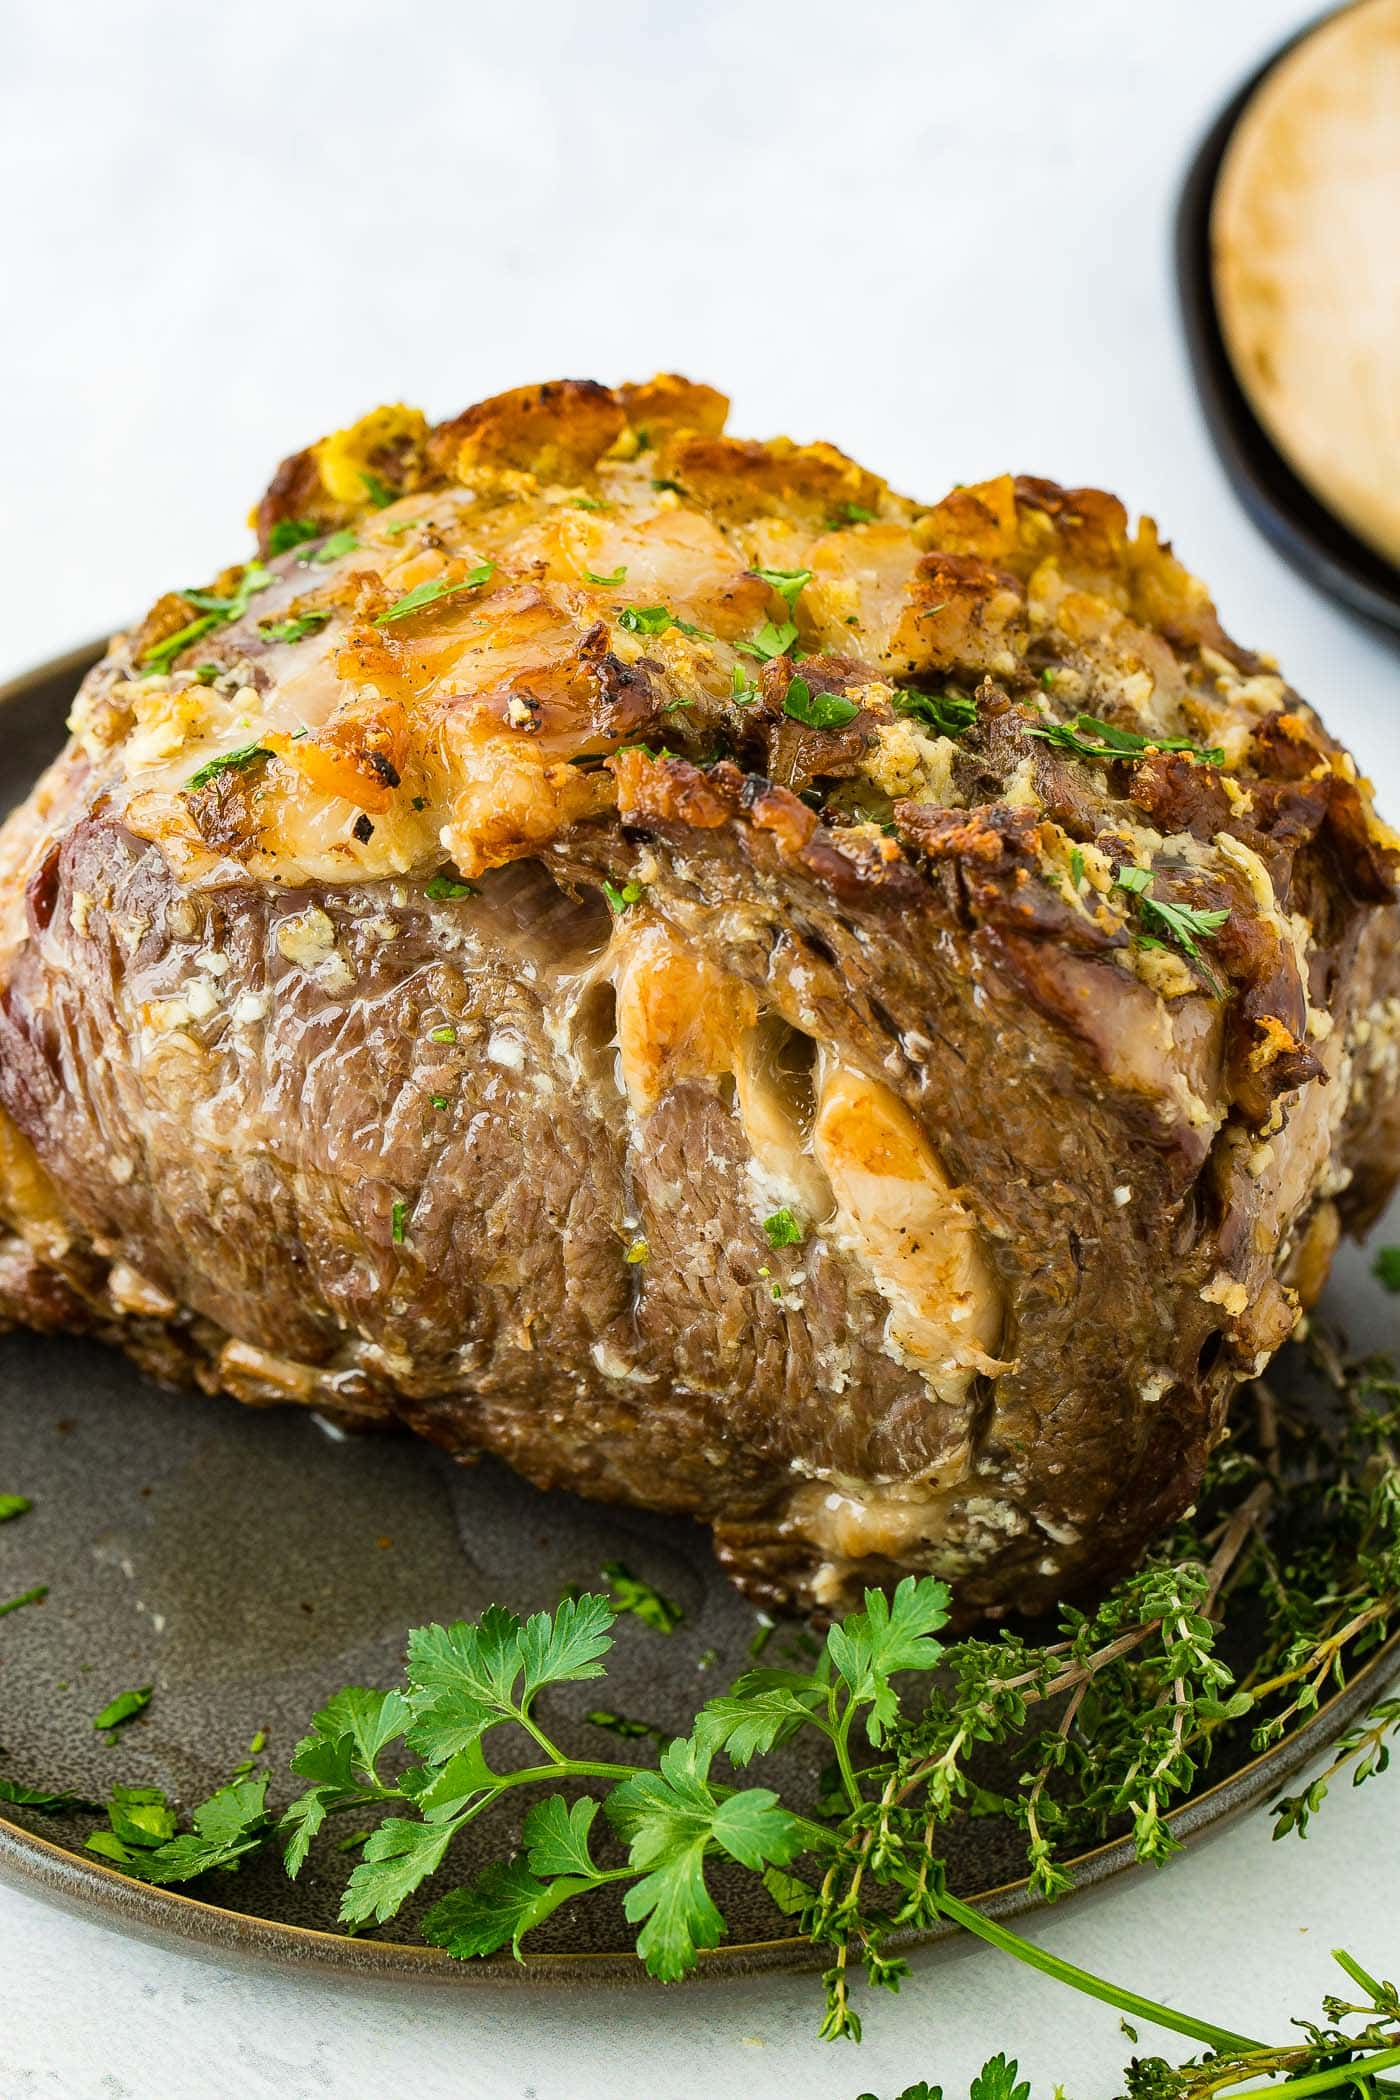 A photo of a cooked instant pot prime rib roast.